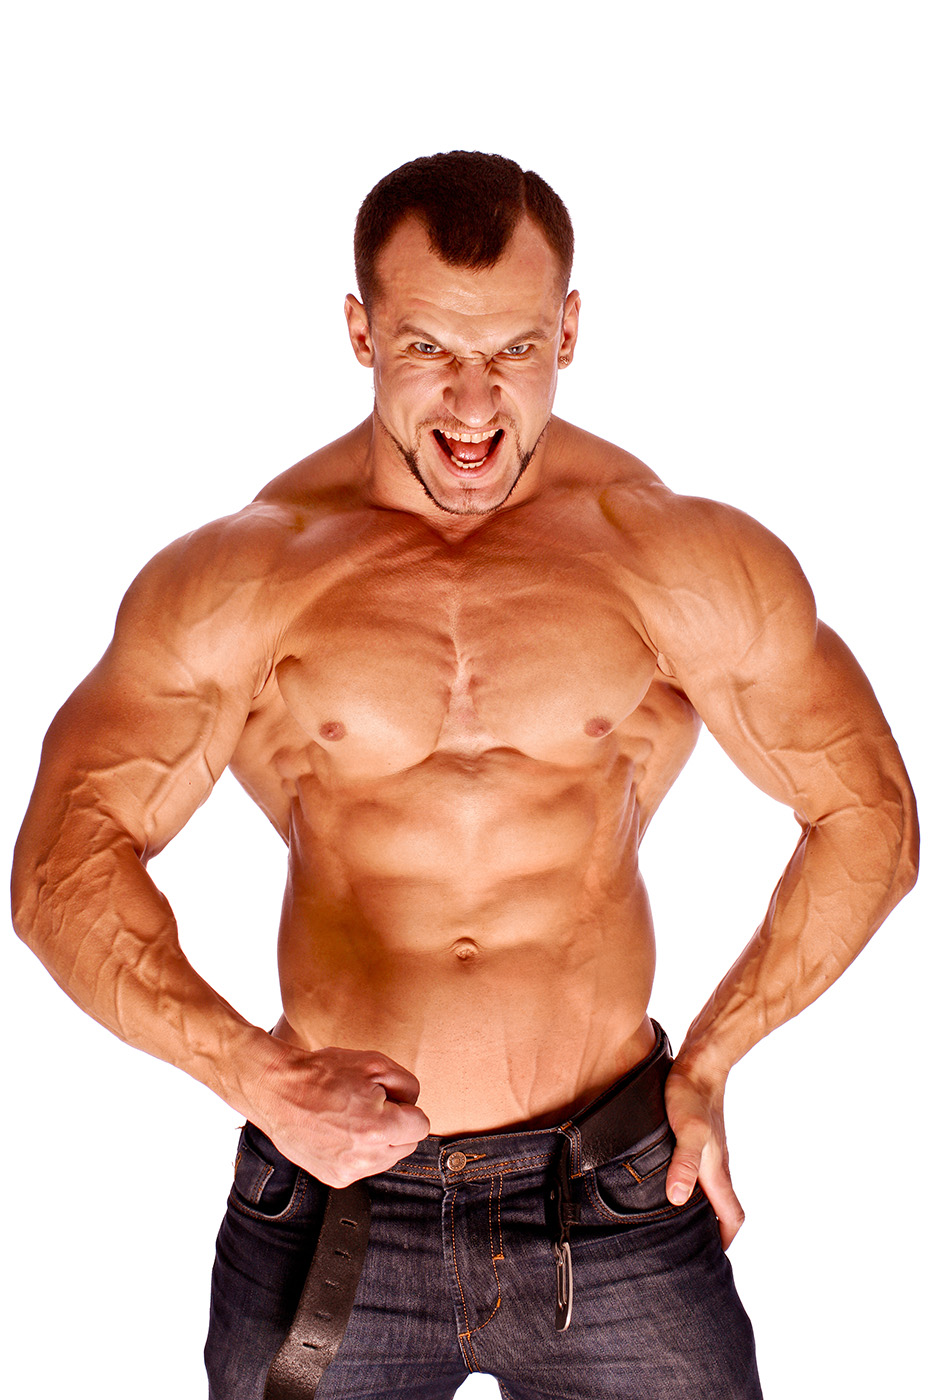 Get muscle building results with testosterone supplementation